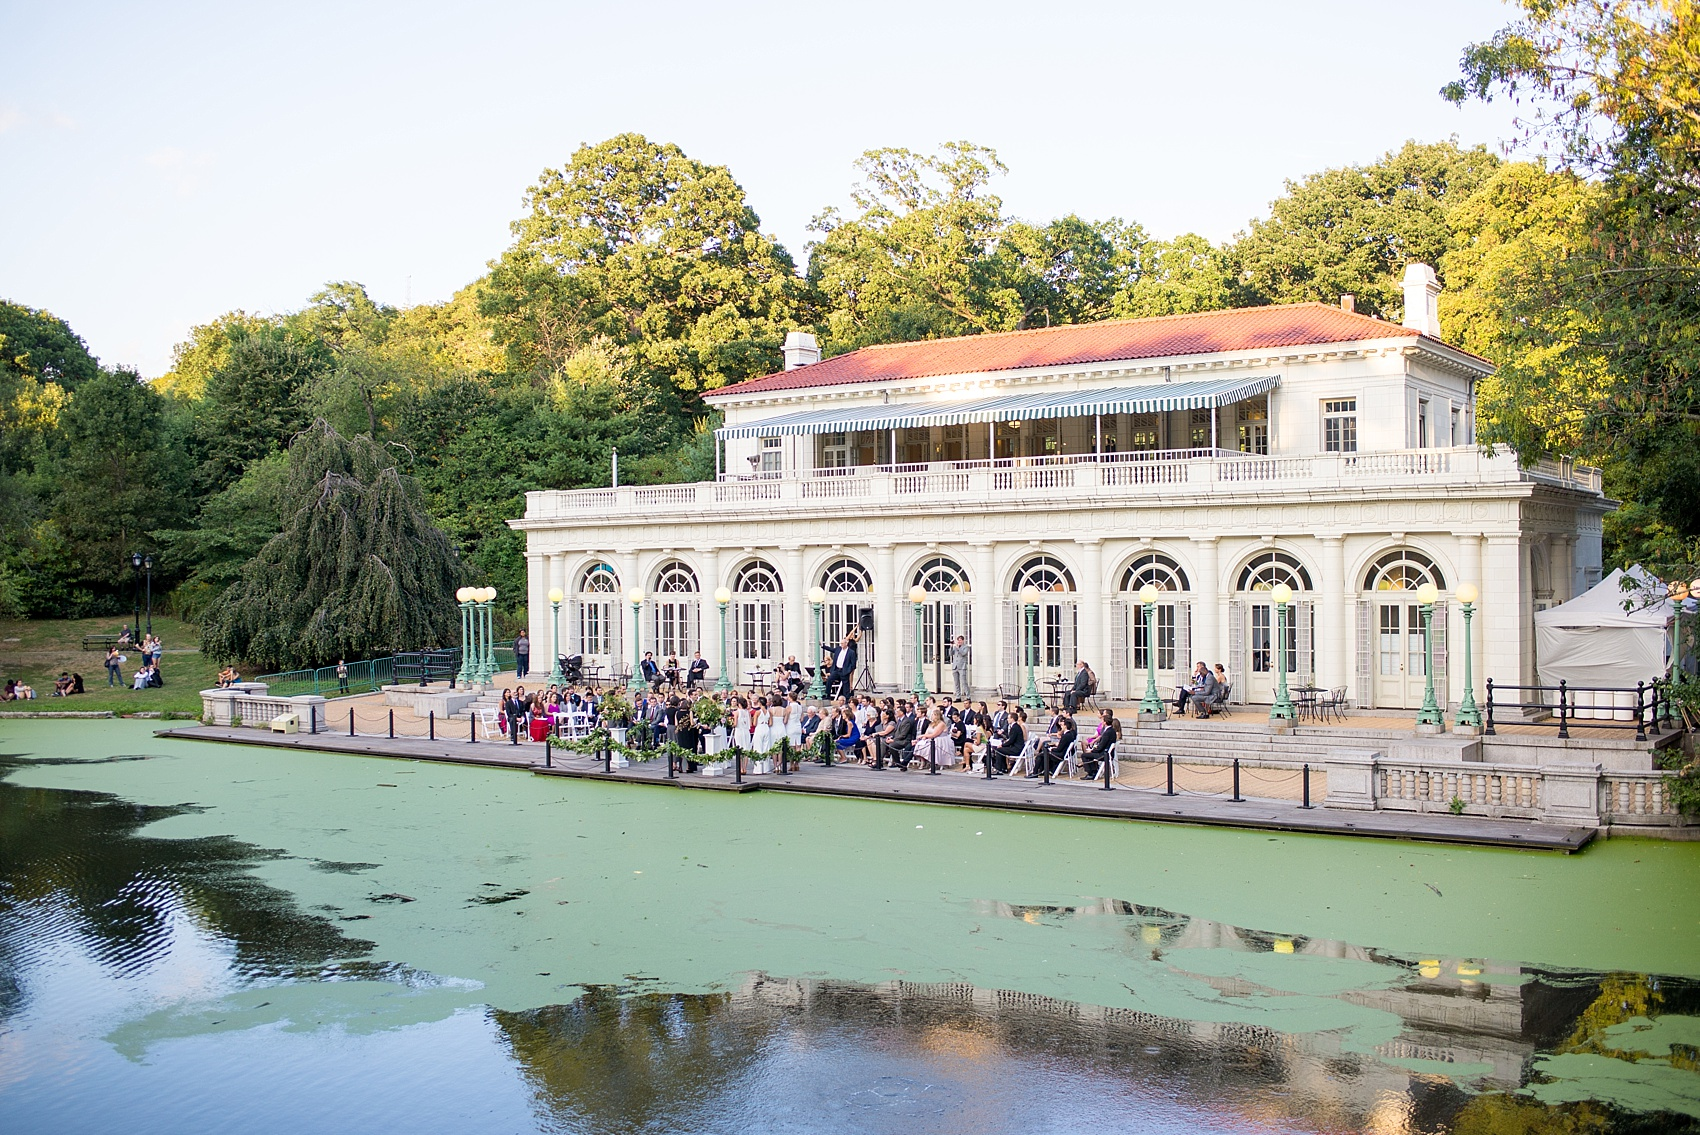 Mikkel Paige Photography Photo Of An Outdoor Ceremony At A Prospect Park Boathouse Wedding